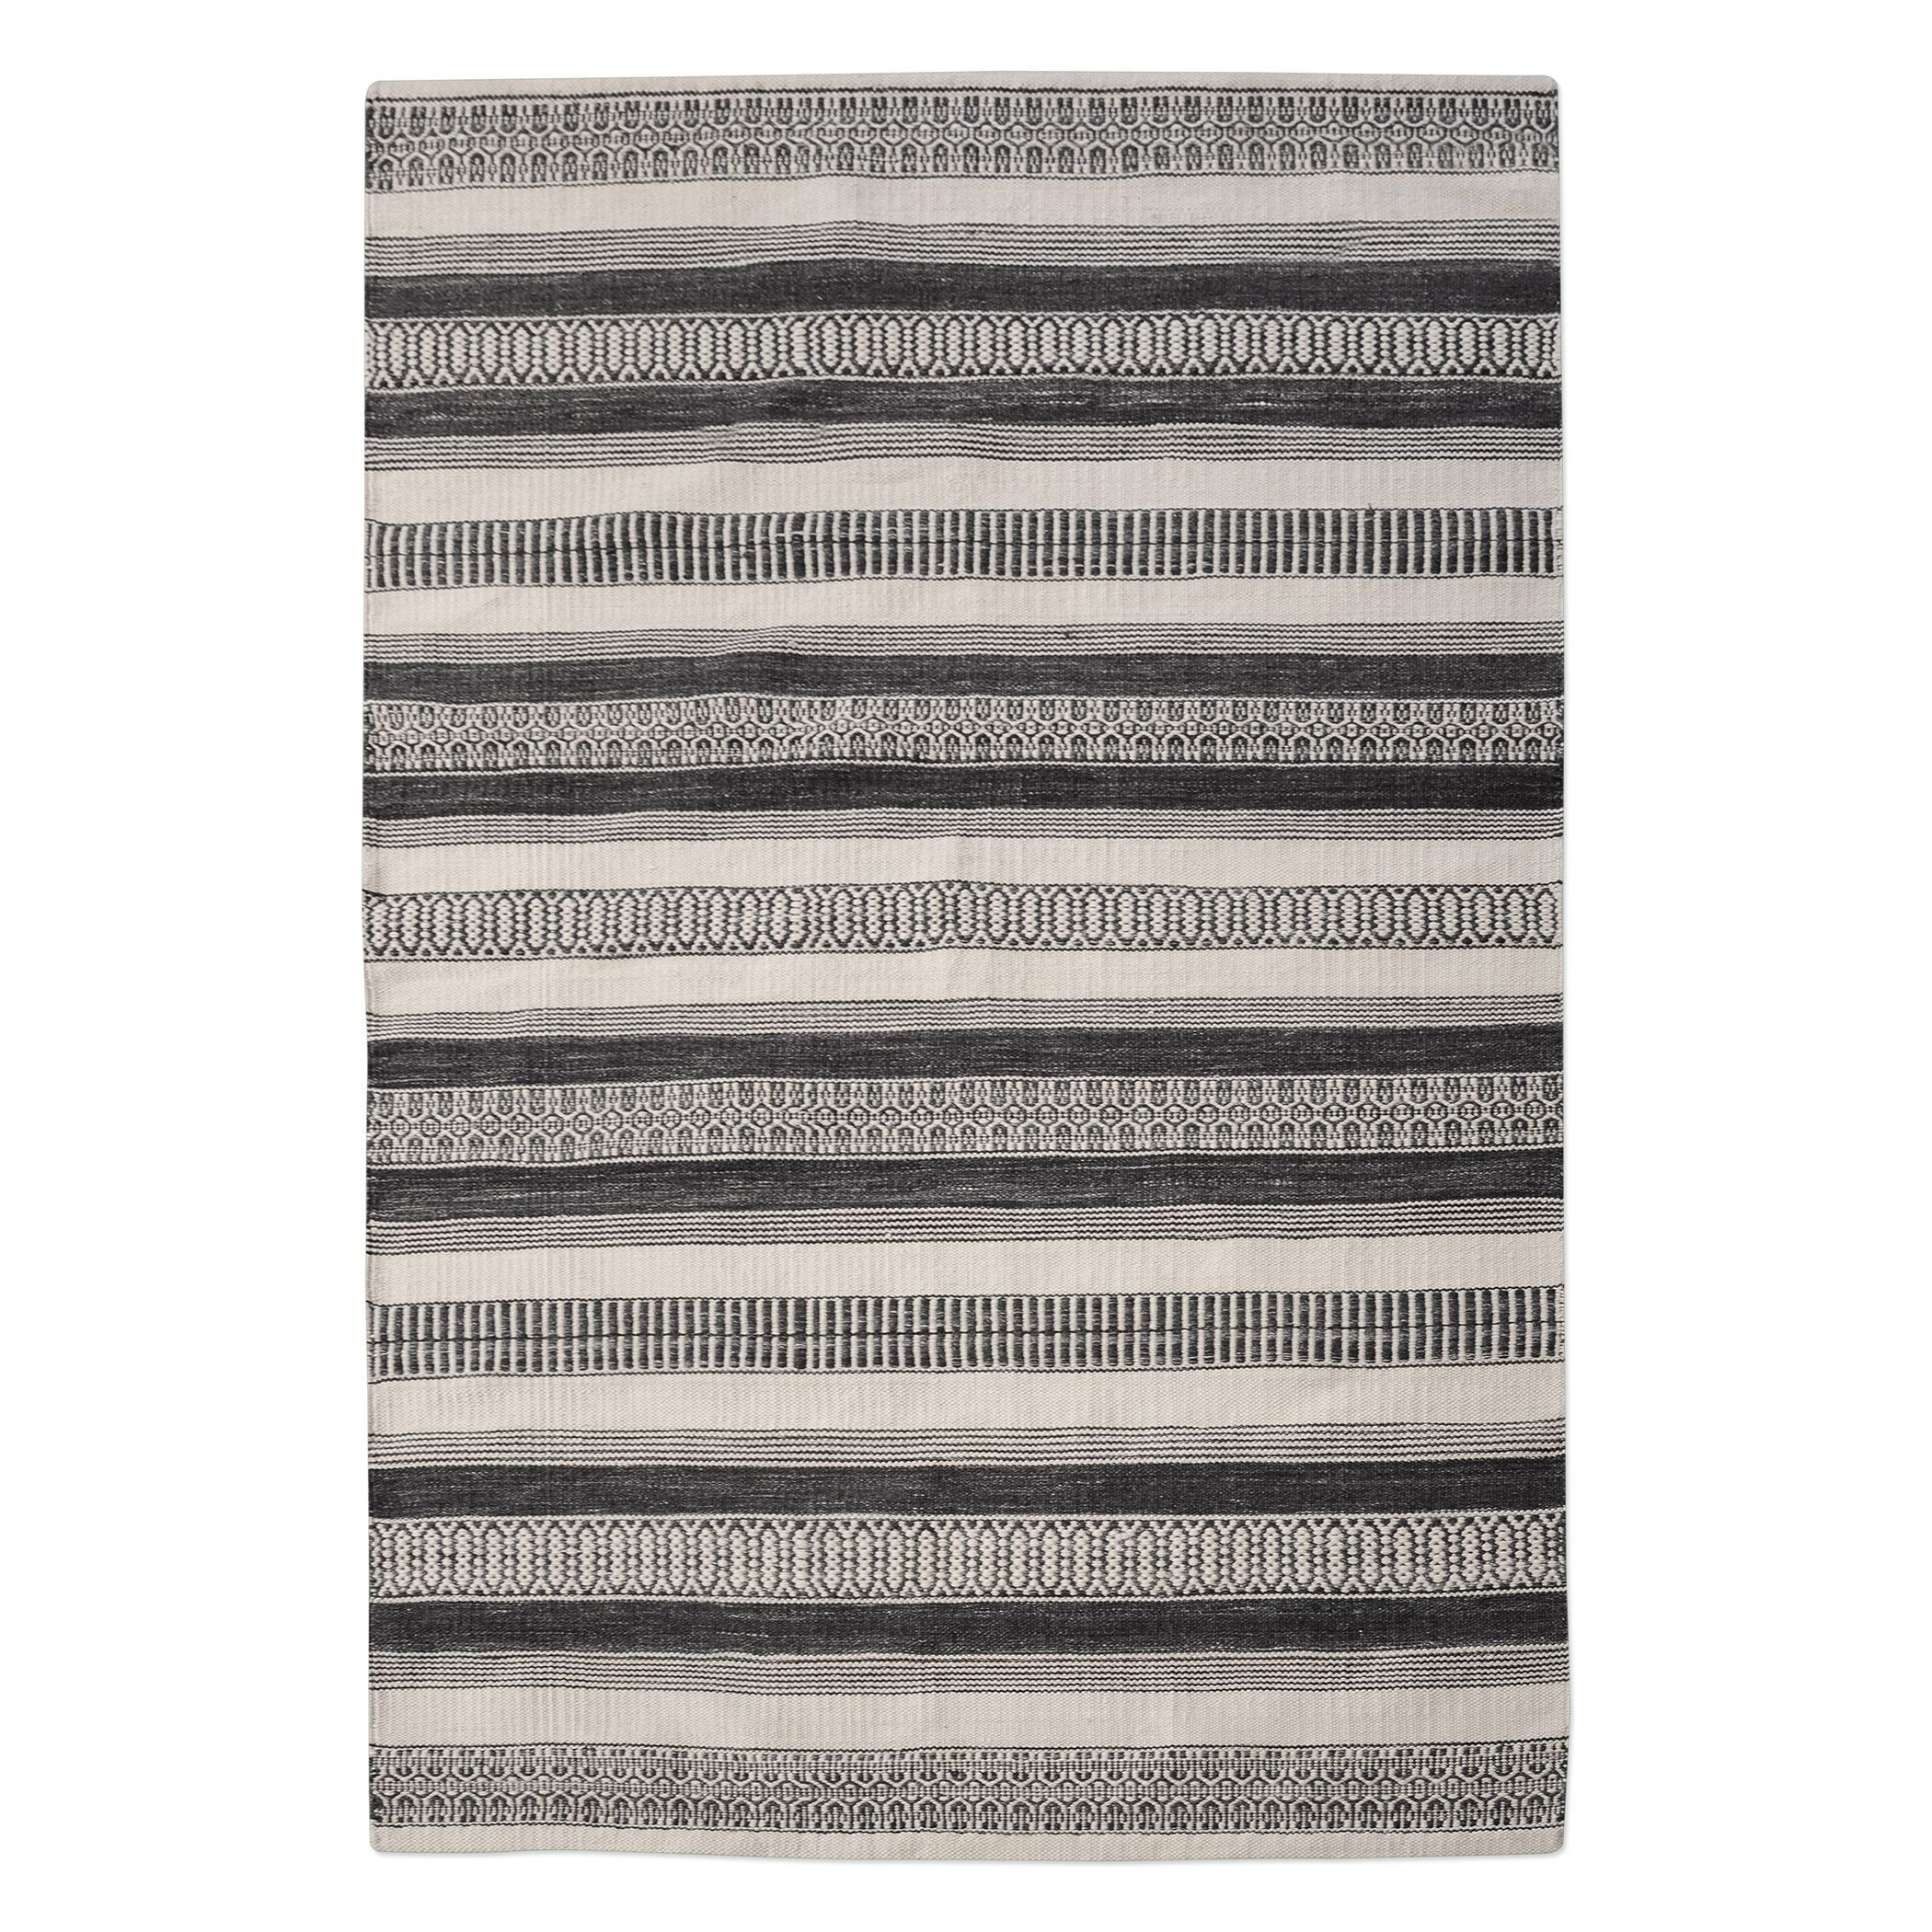 This Hand Woven Indoor Outdoor Rug Uses A Fiber Made From Recycled Plastic Know As Polyethylene Terephthalate This Desig Rugs Area Rugs Outdoor Rugs